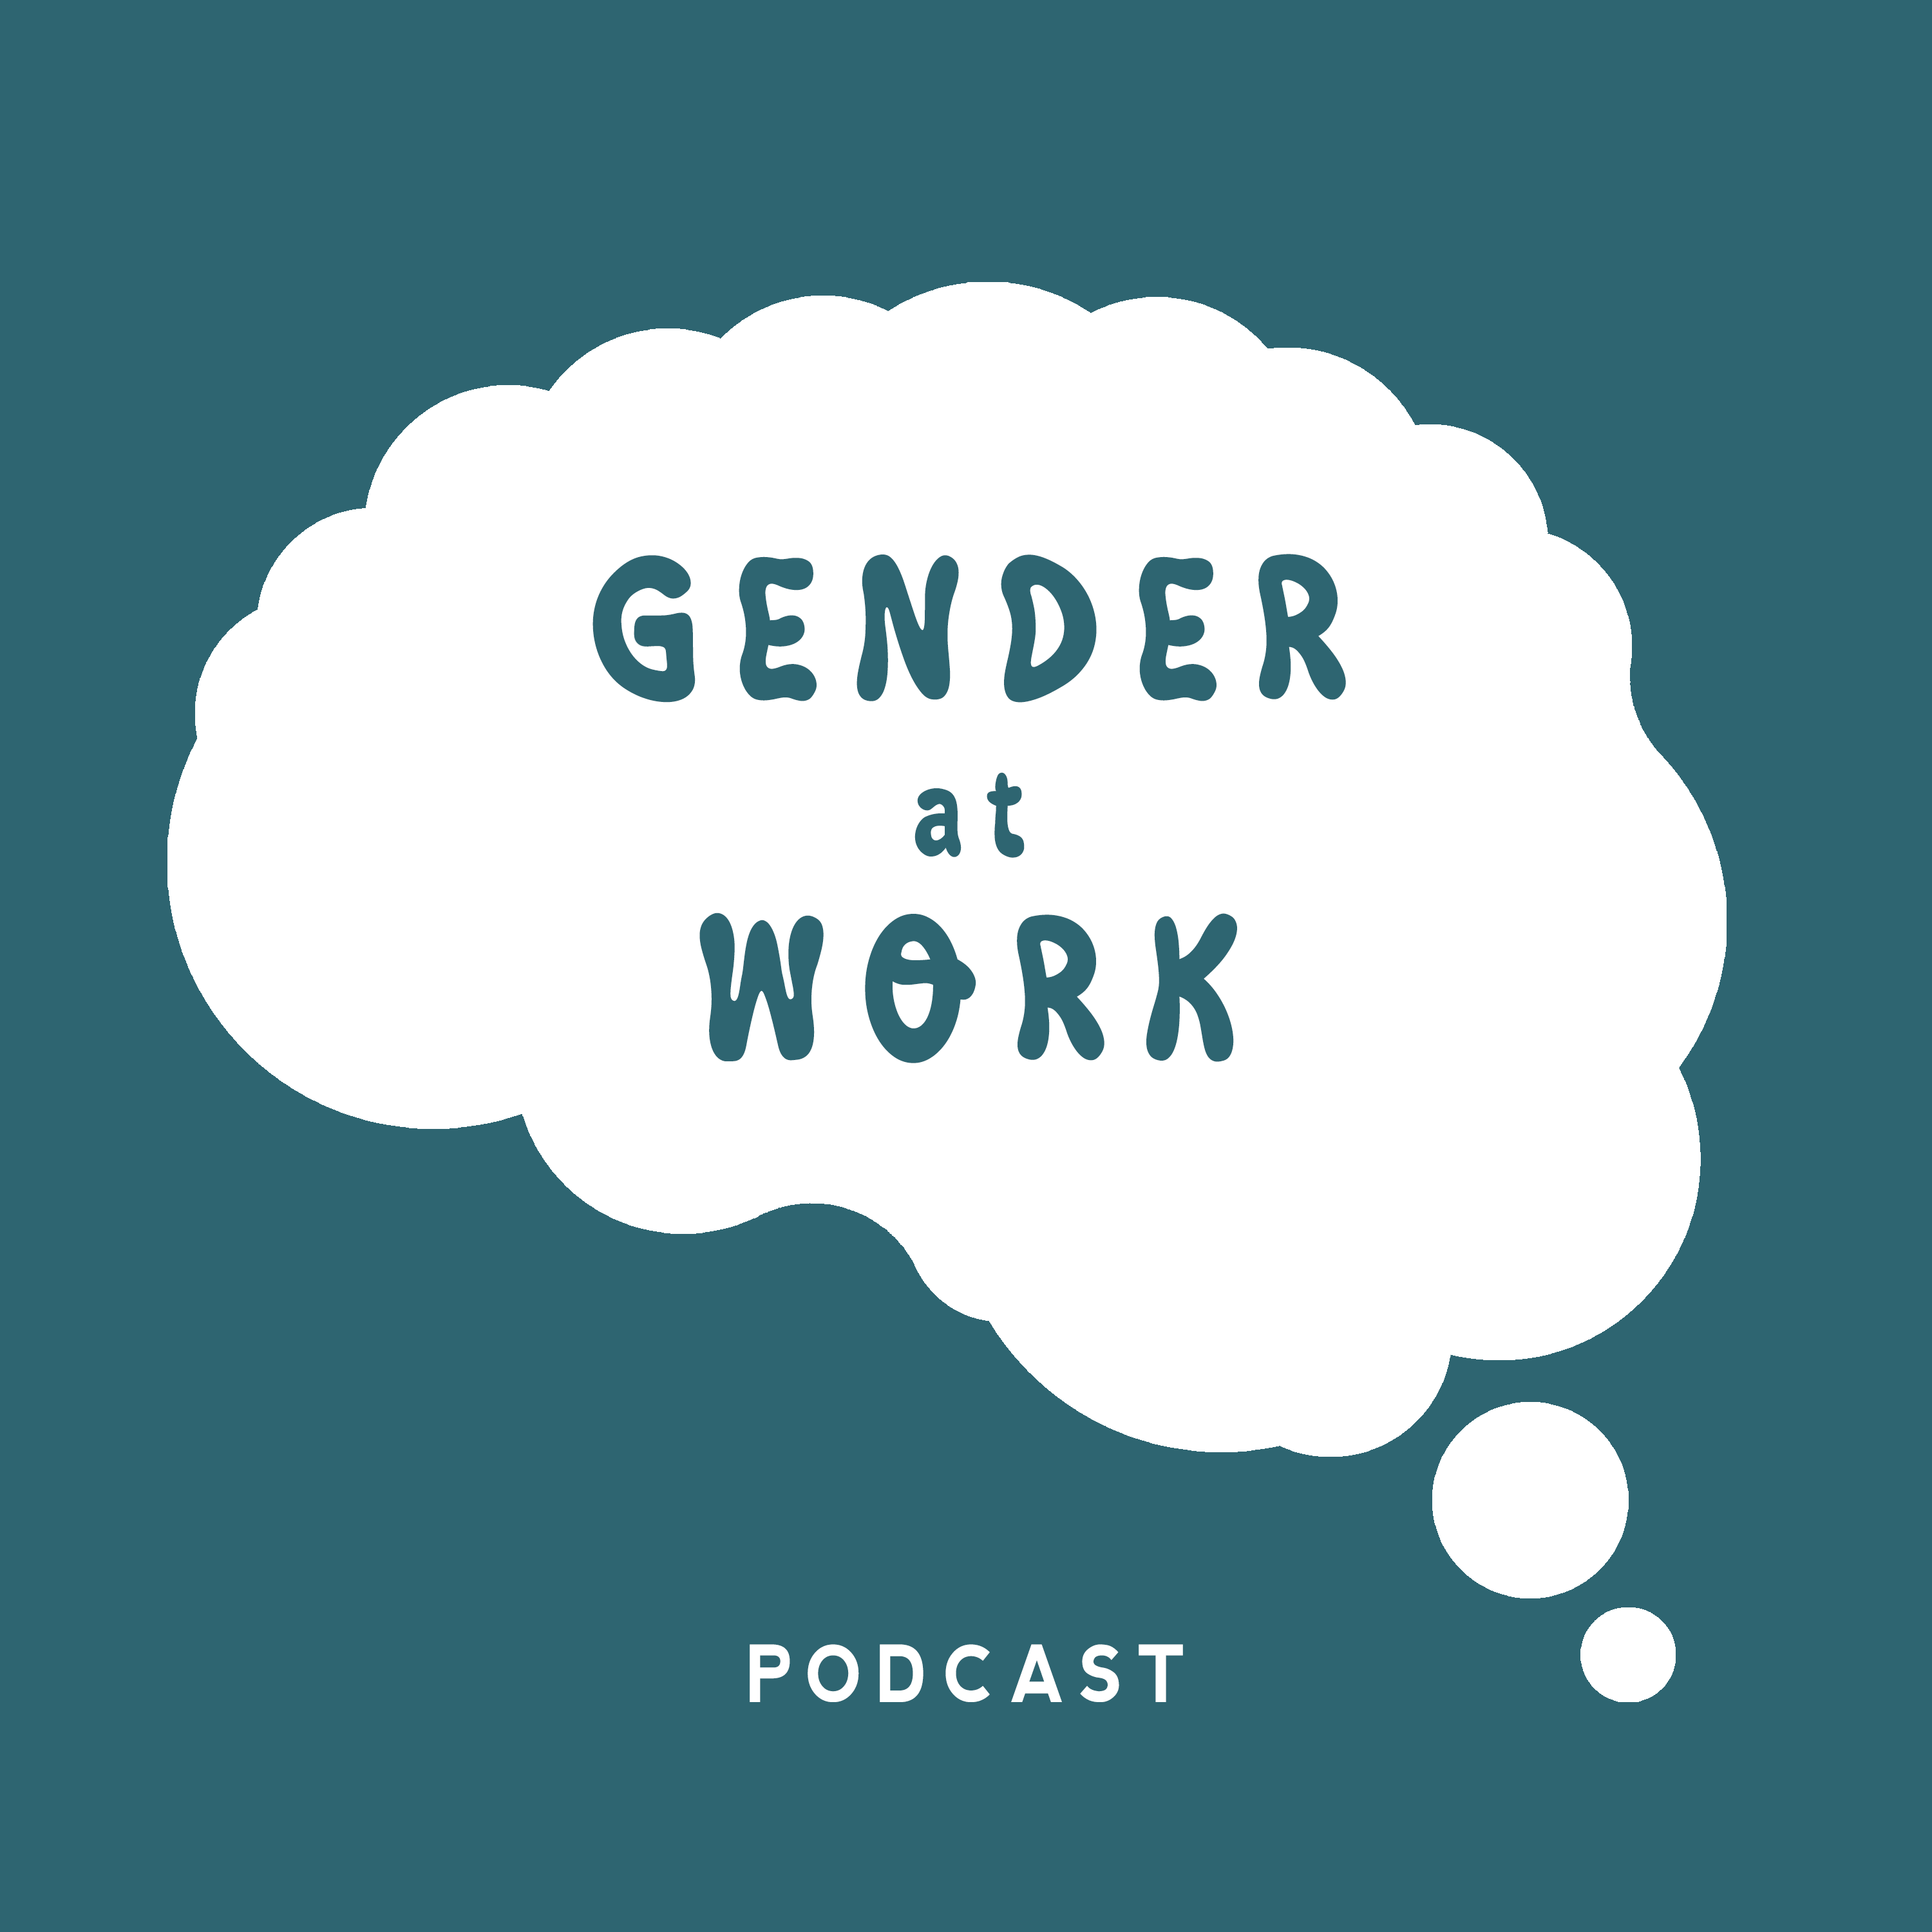 Floating thought bubble with text: gender at work podcast